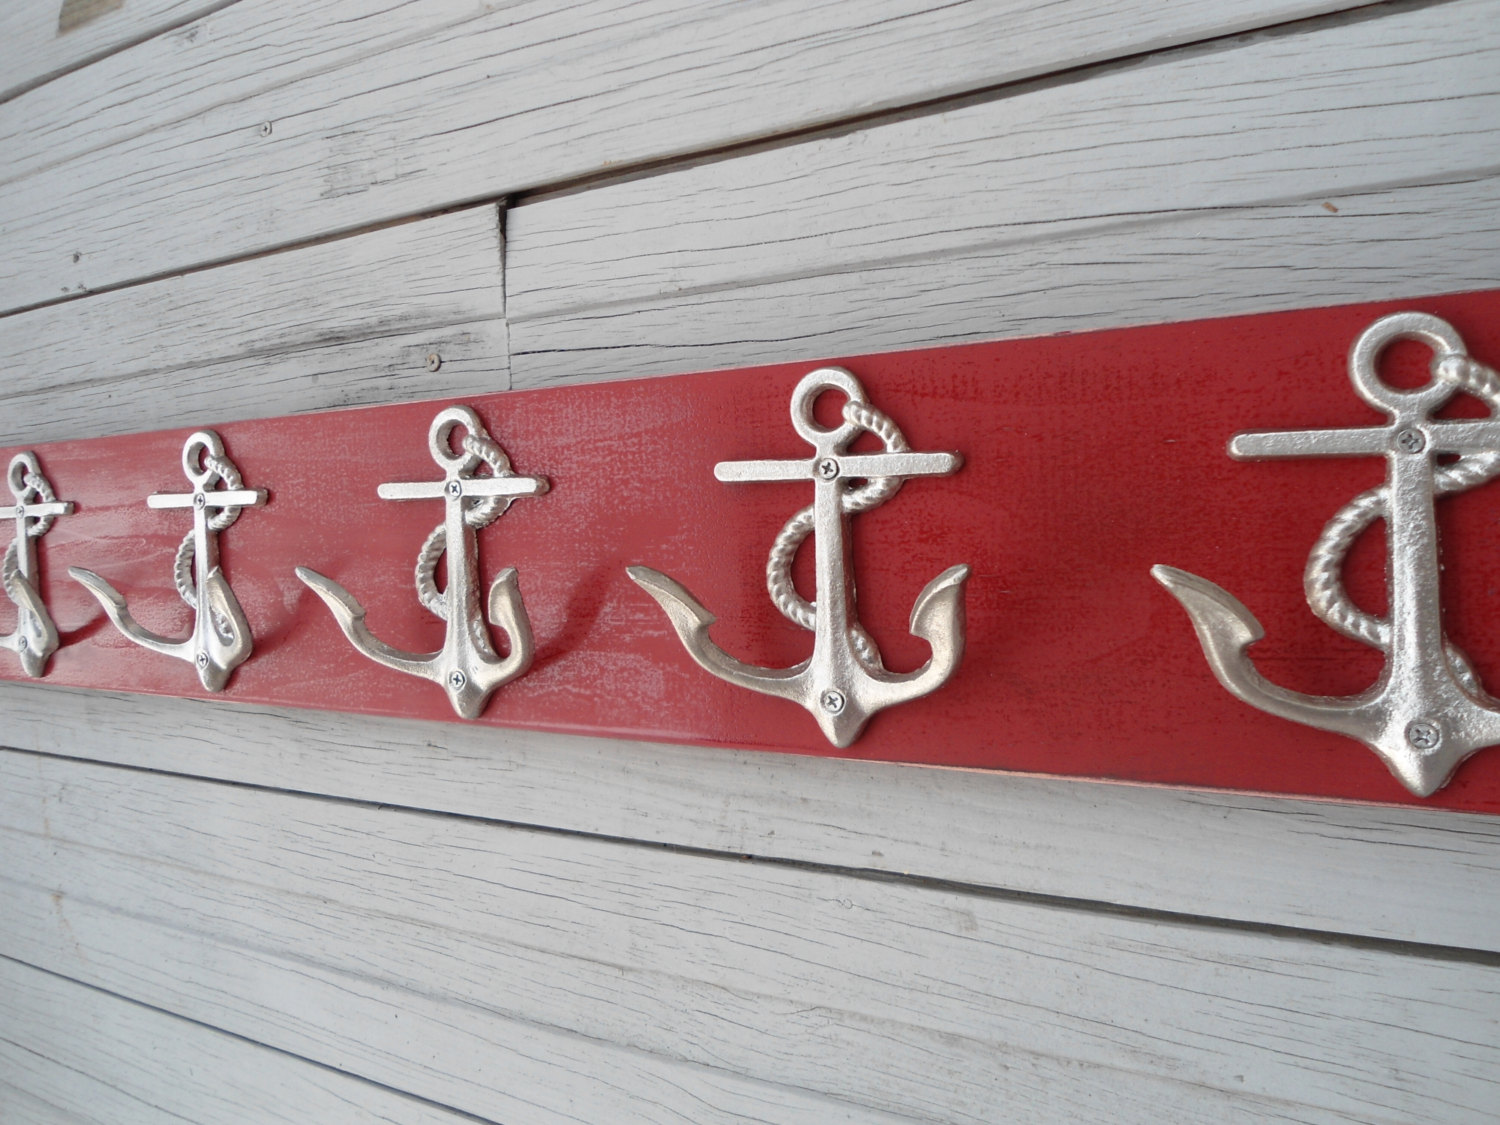 Auger valve image ship anchor outdoor decor for Anchor decoration